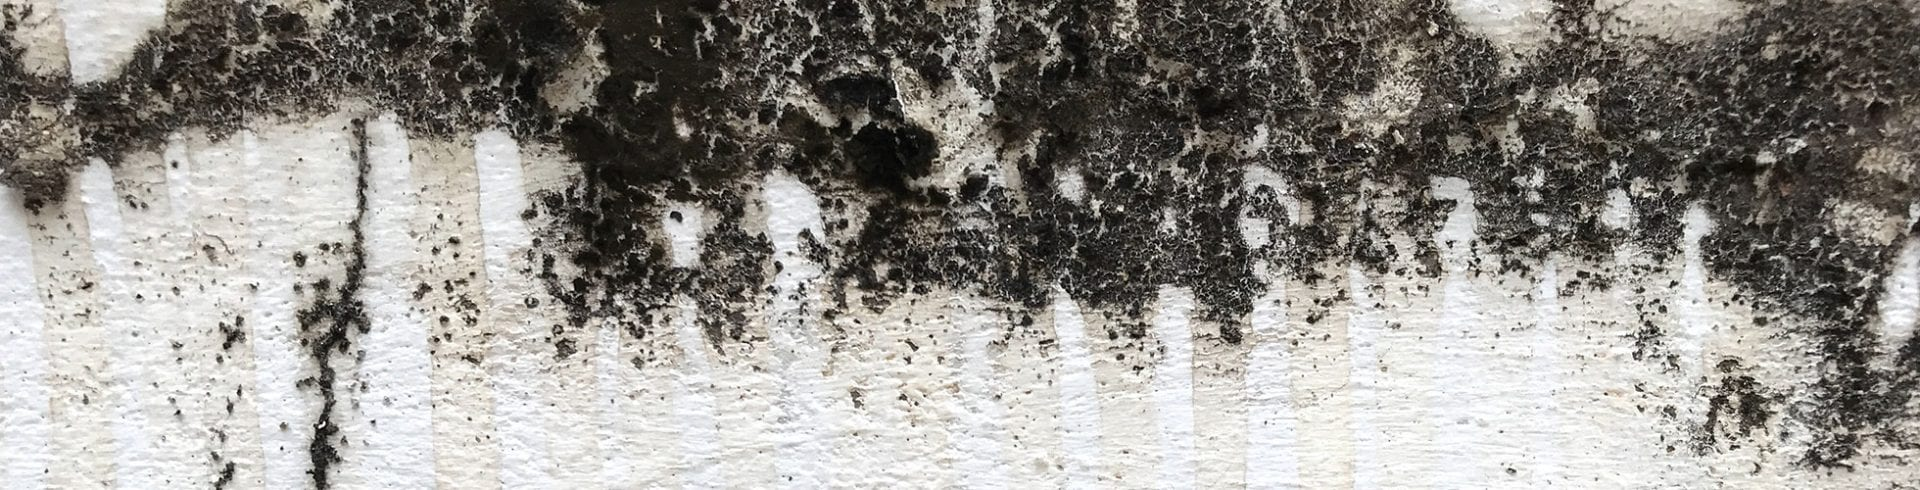 Indoor Mold is a Major Health Concern | Blog | MoldOff®